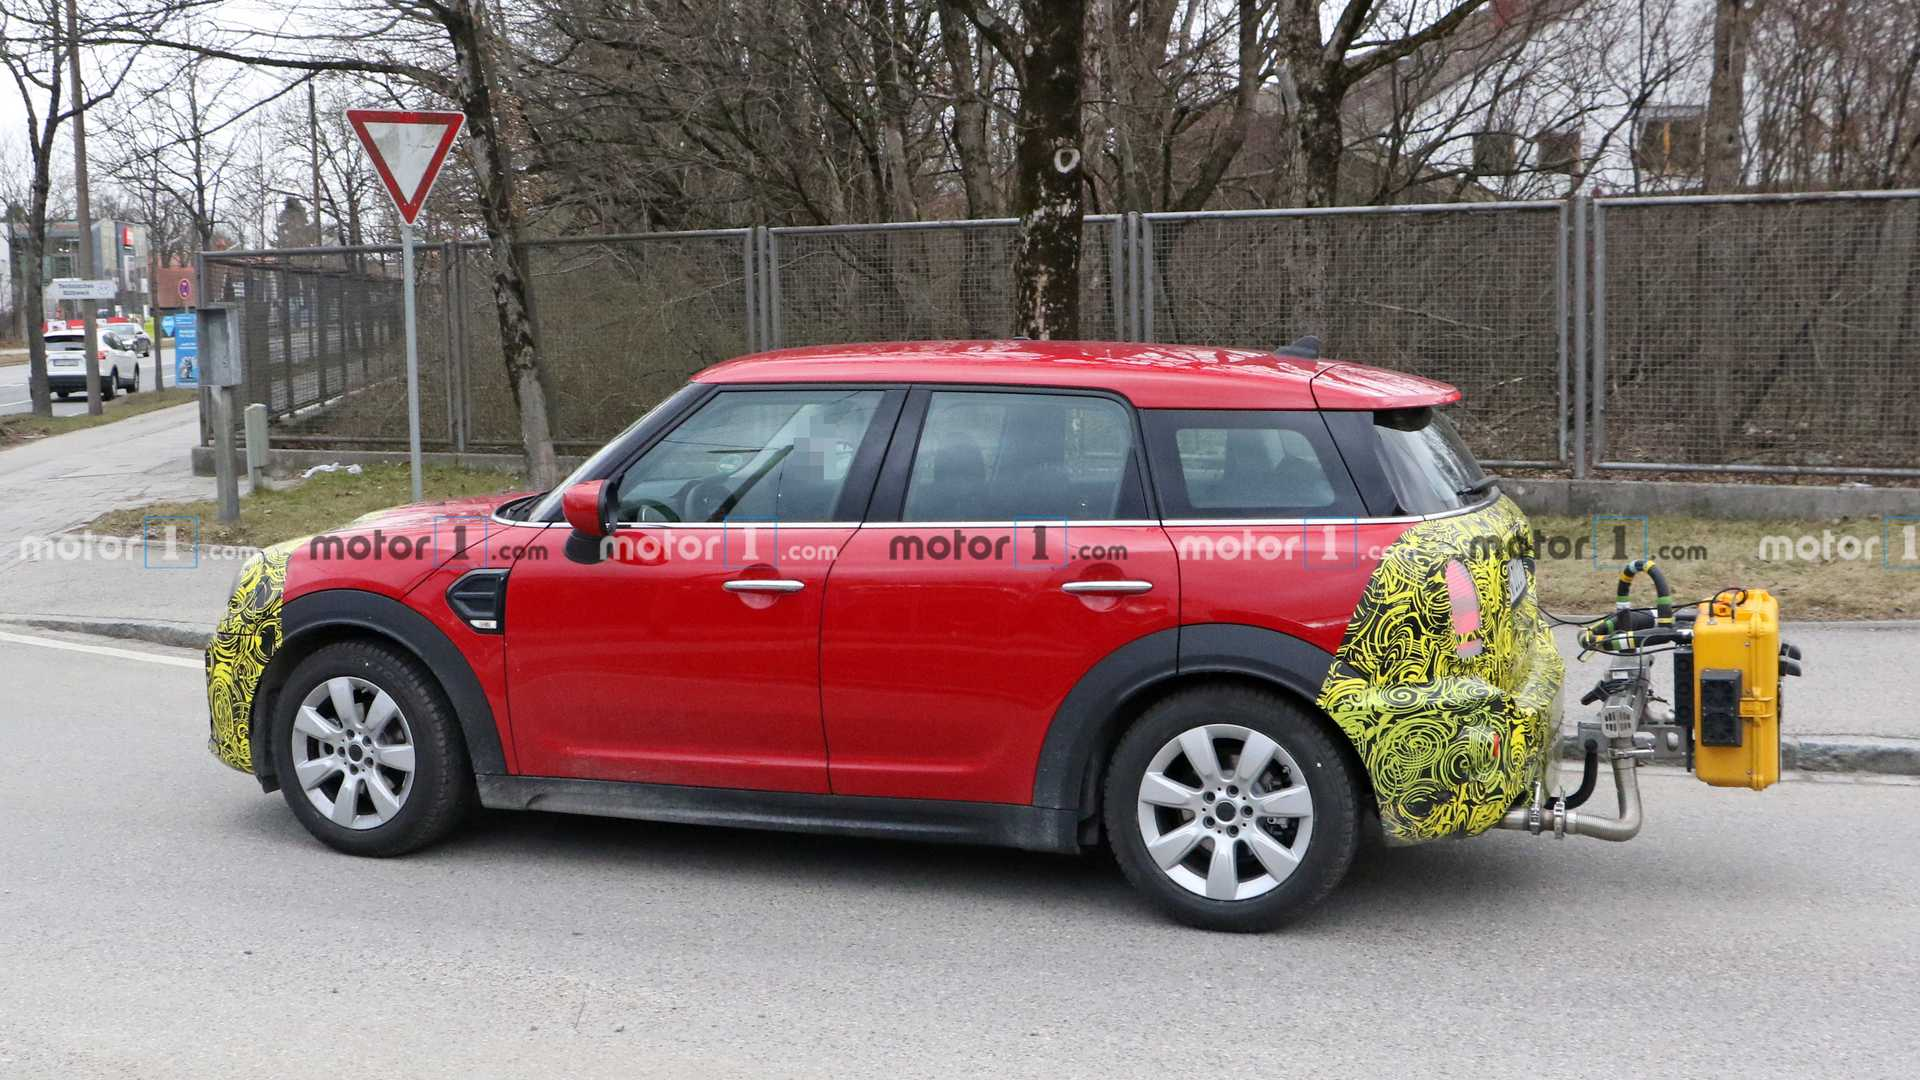 2021 mini countryman spied inside and out